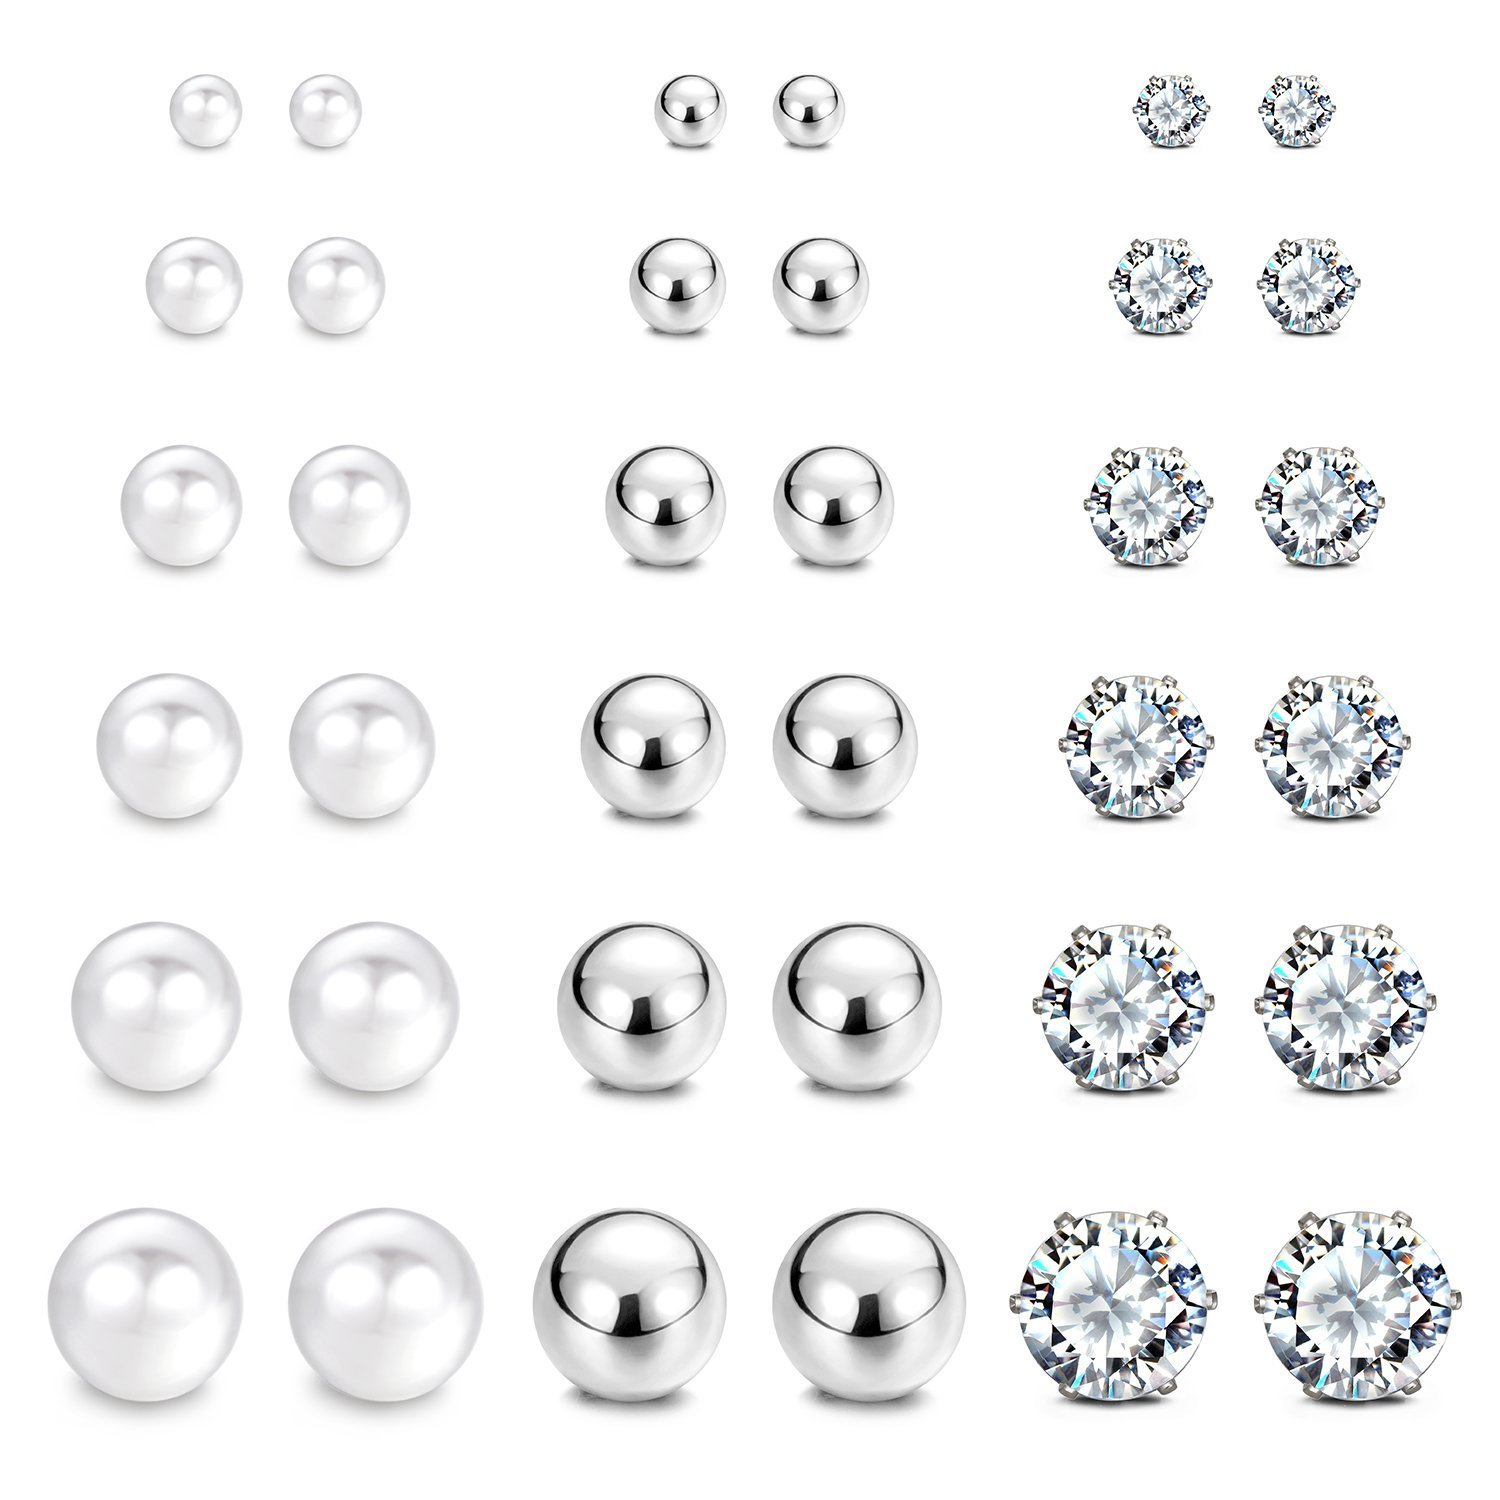 JewelrieShop Stainless Steel Cubic Zirconia Studs Earrings Round Ball Earrings Faux Pearl Earrings Set Hypoallergenic for Women Girls (8 Pairs/18 pairs)